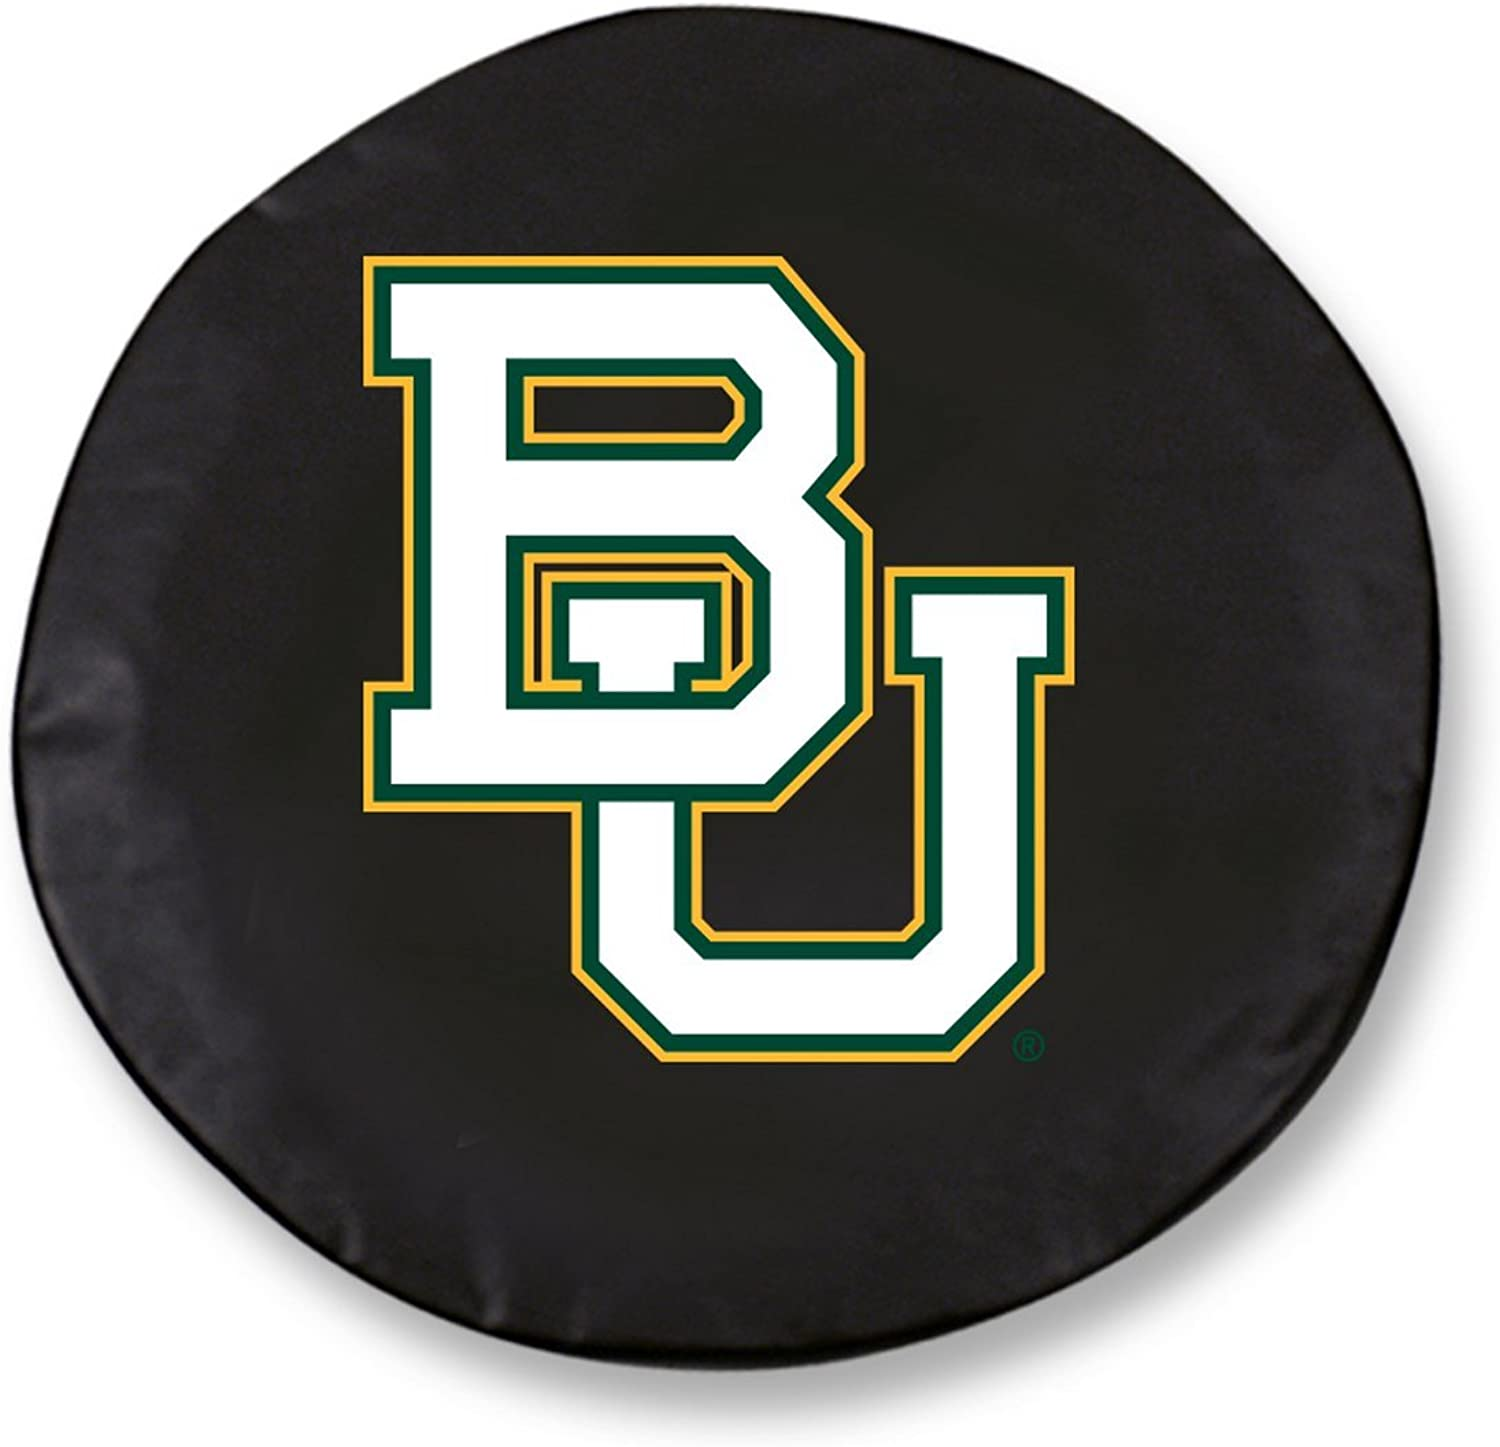 Baylor Bears HBS Black Vinyl Fitted Spare Car Tire Cover